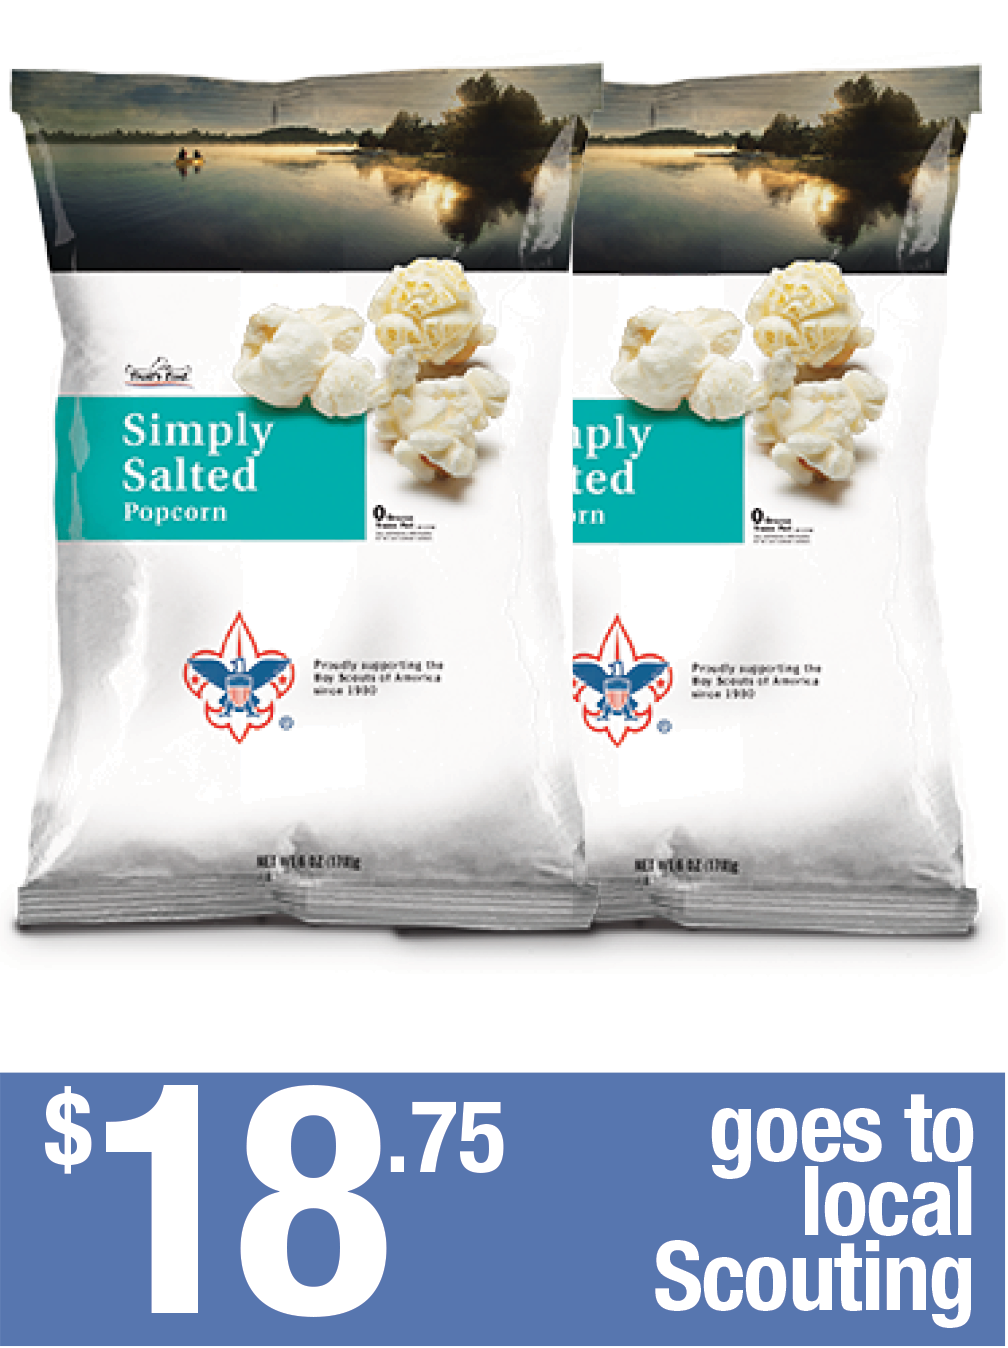 6oz Simply Salted